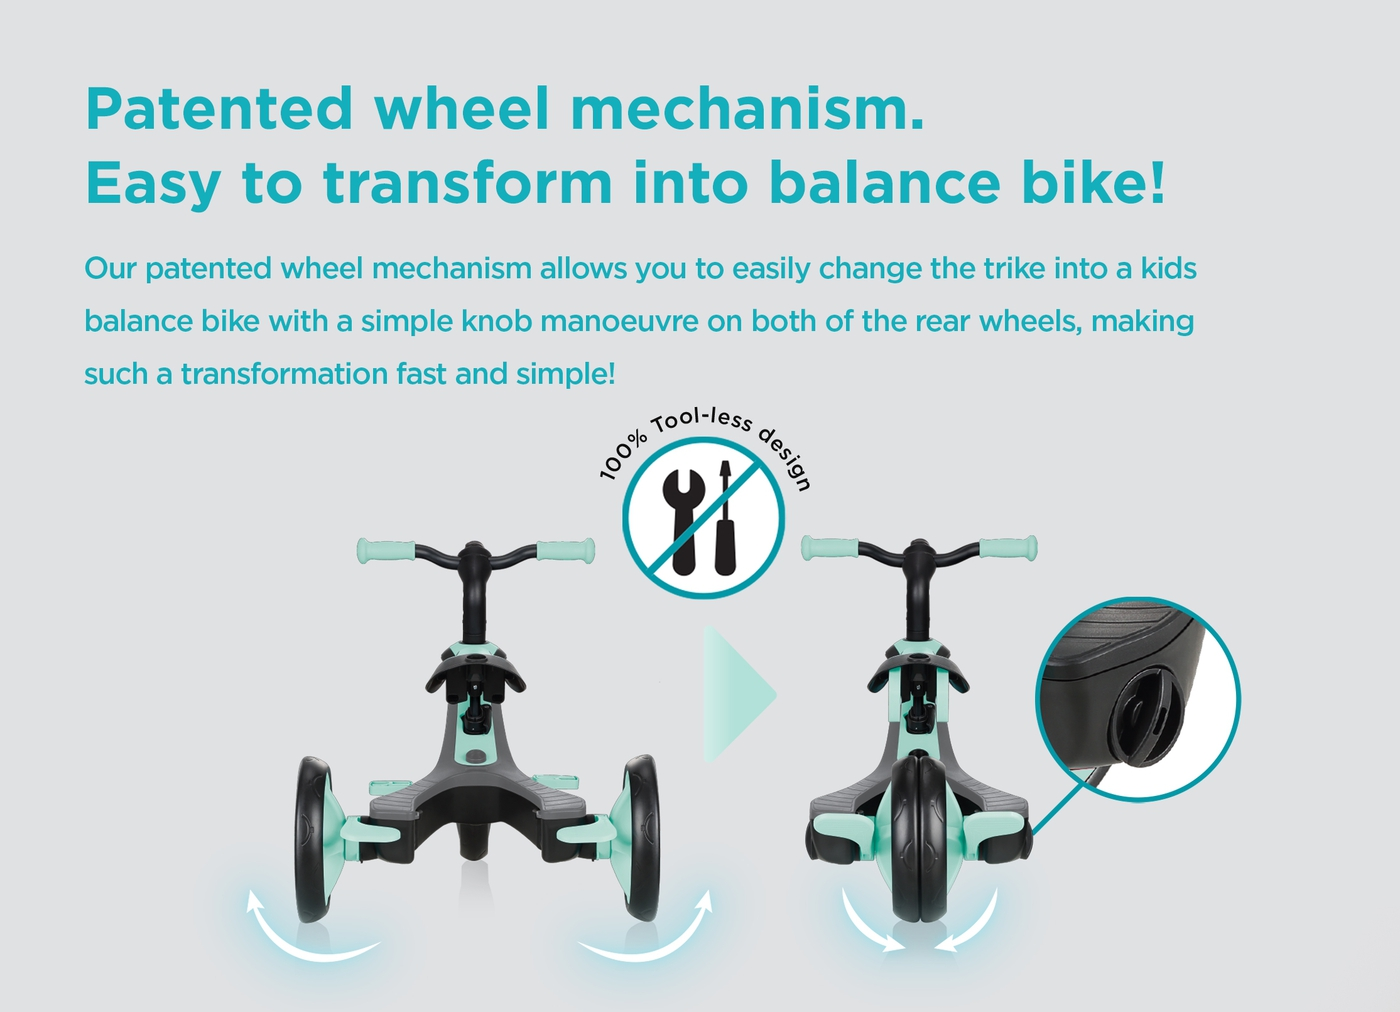 Patented wheel mechanism. Easy to transform into balance bike!